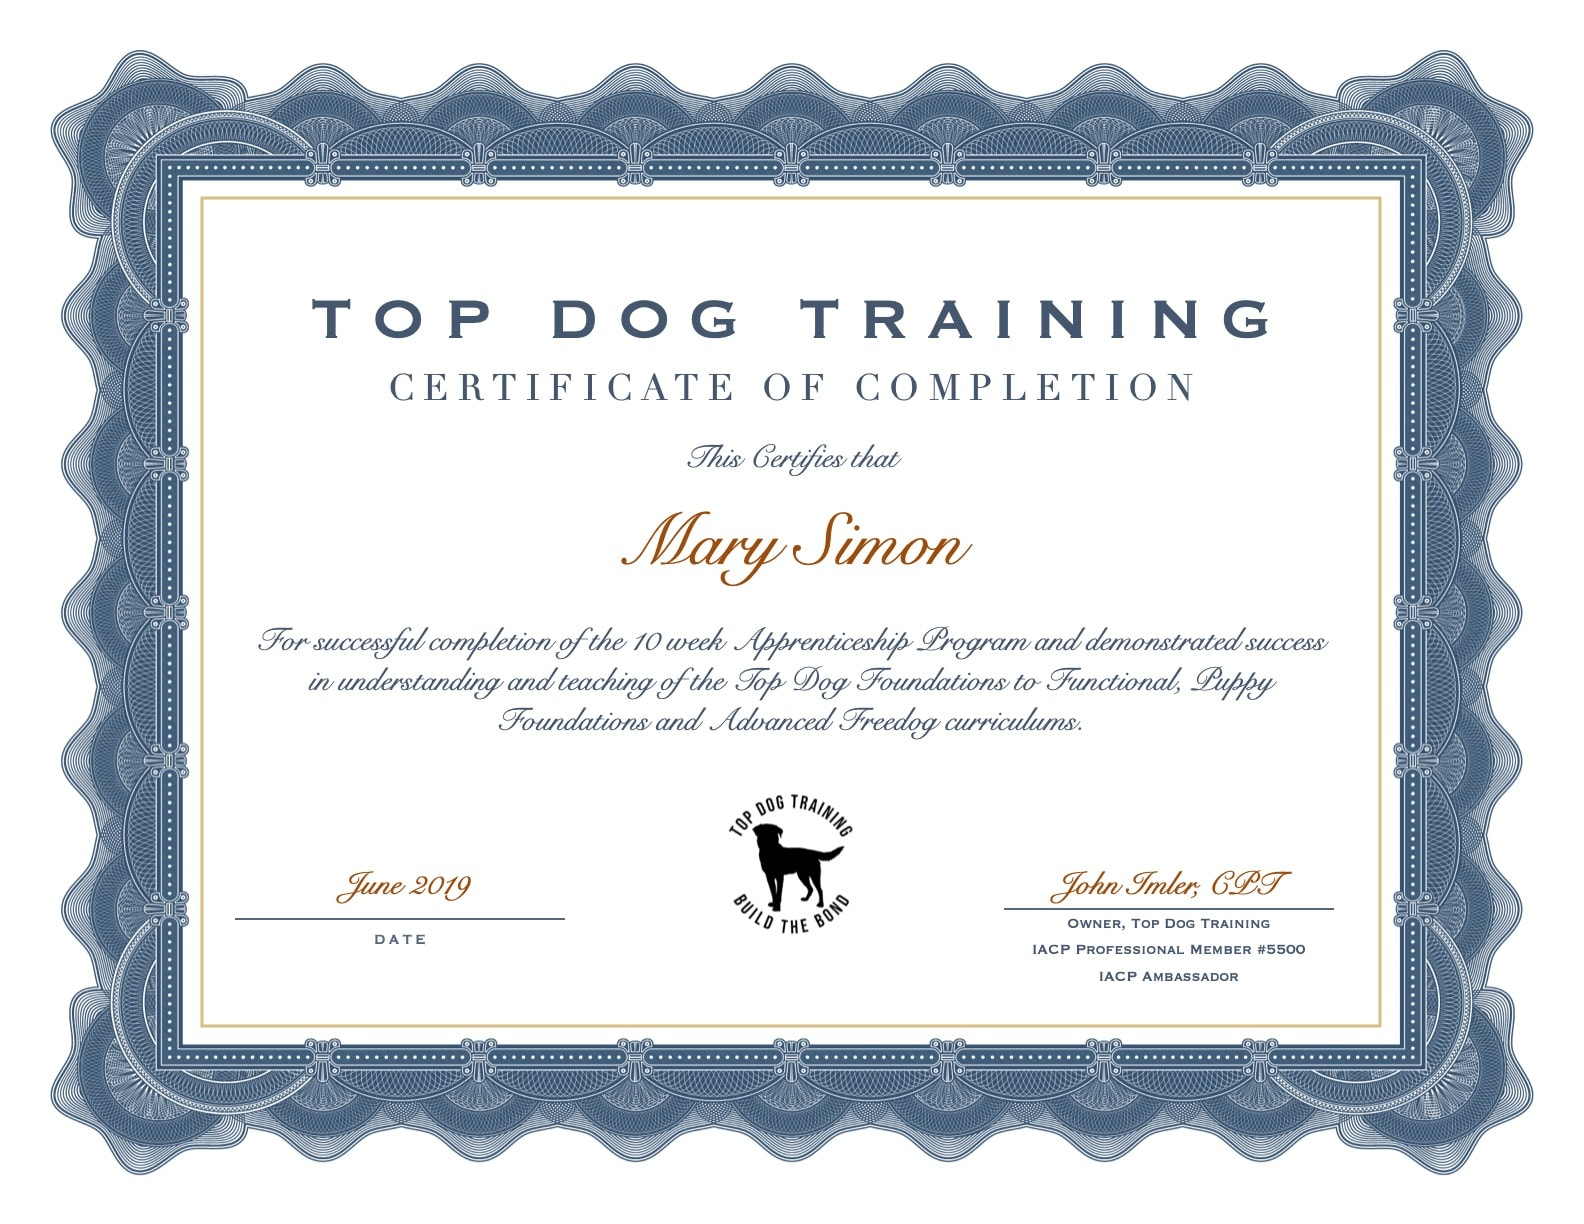 Top dog Training Certificate Of completion